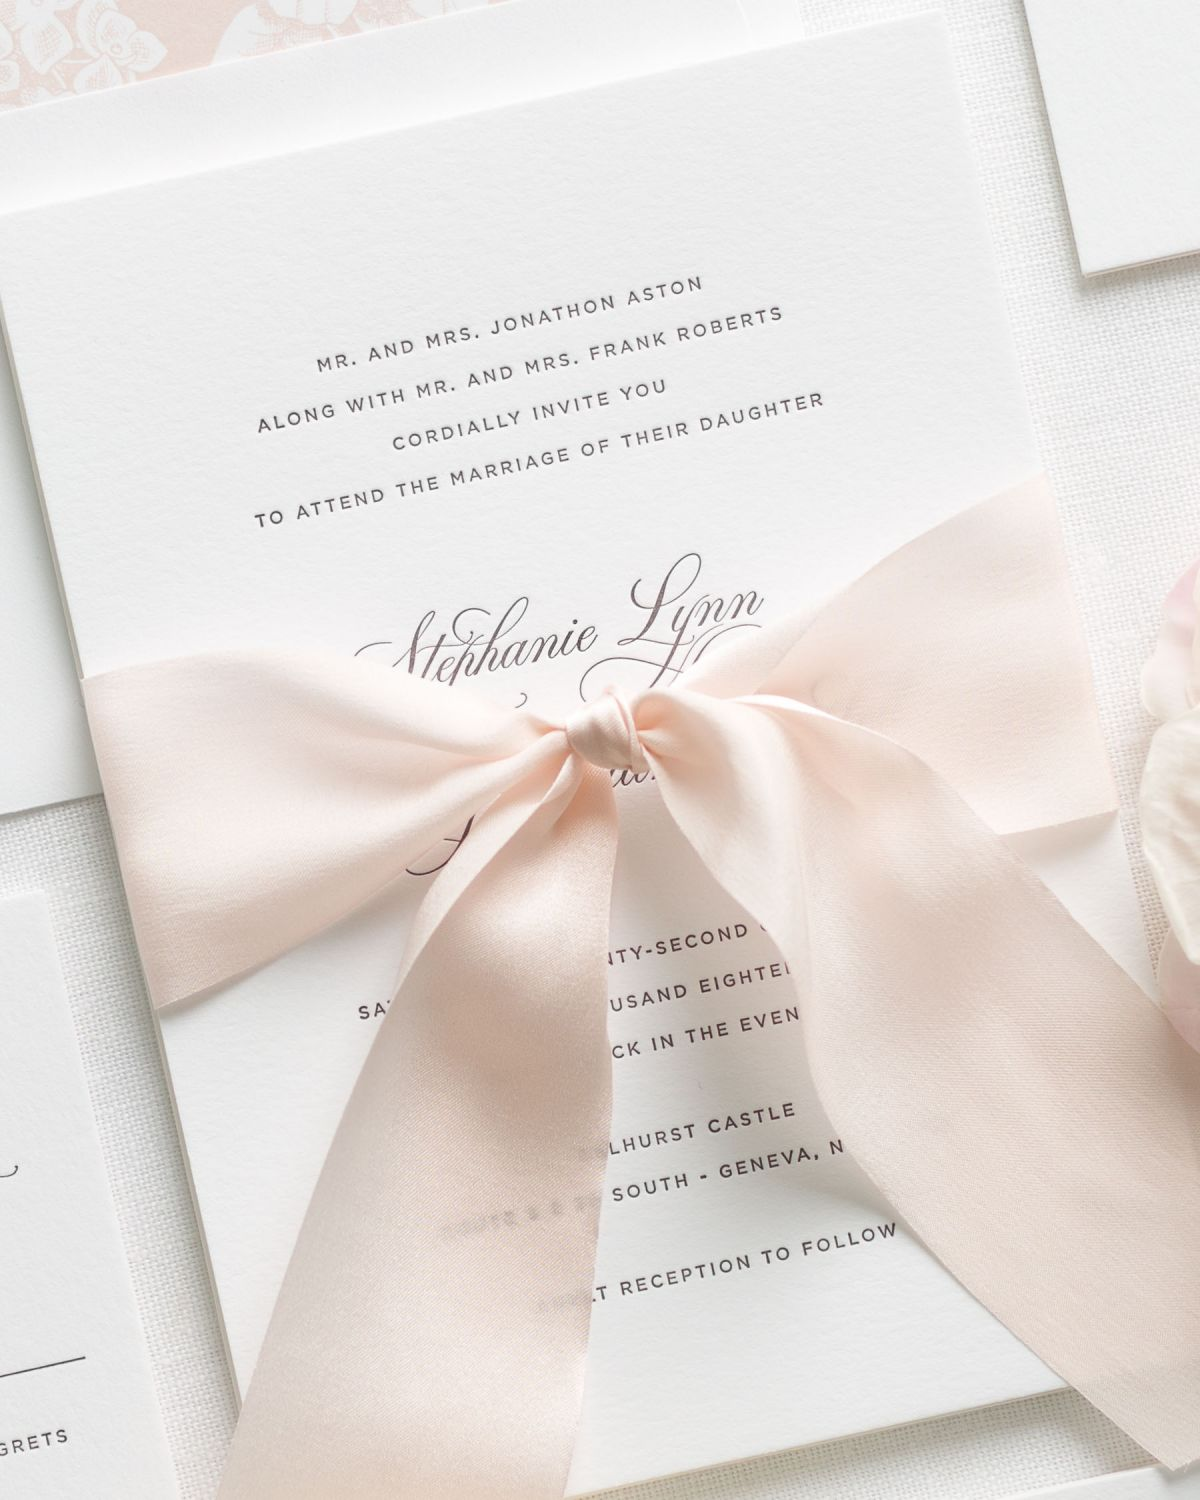 Elegant Letterpress Invitations in blush pink